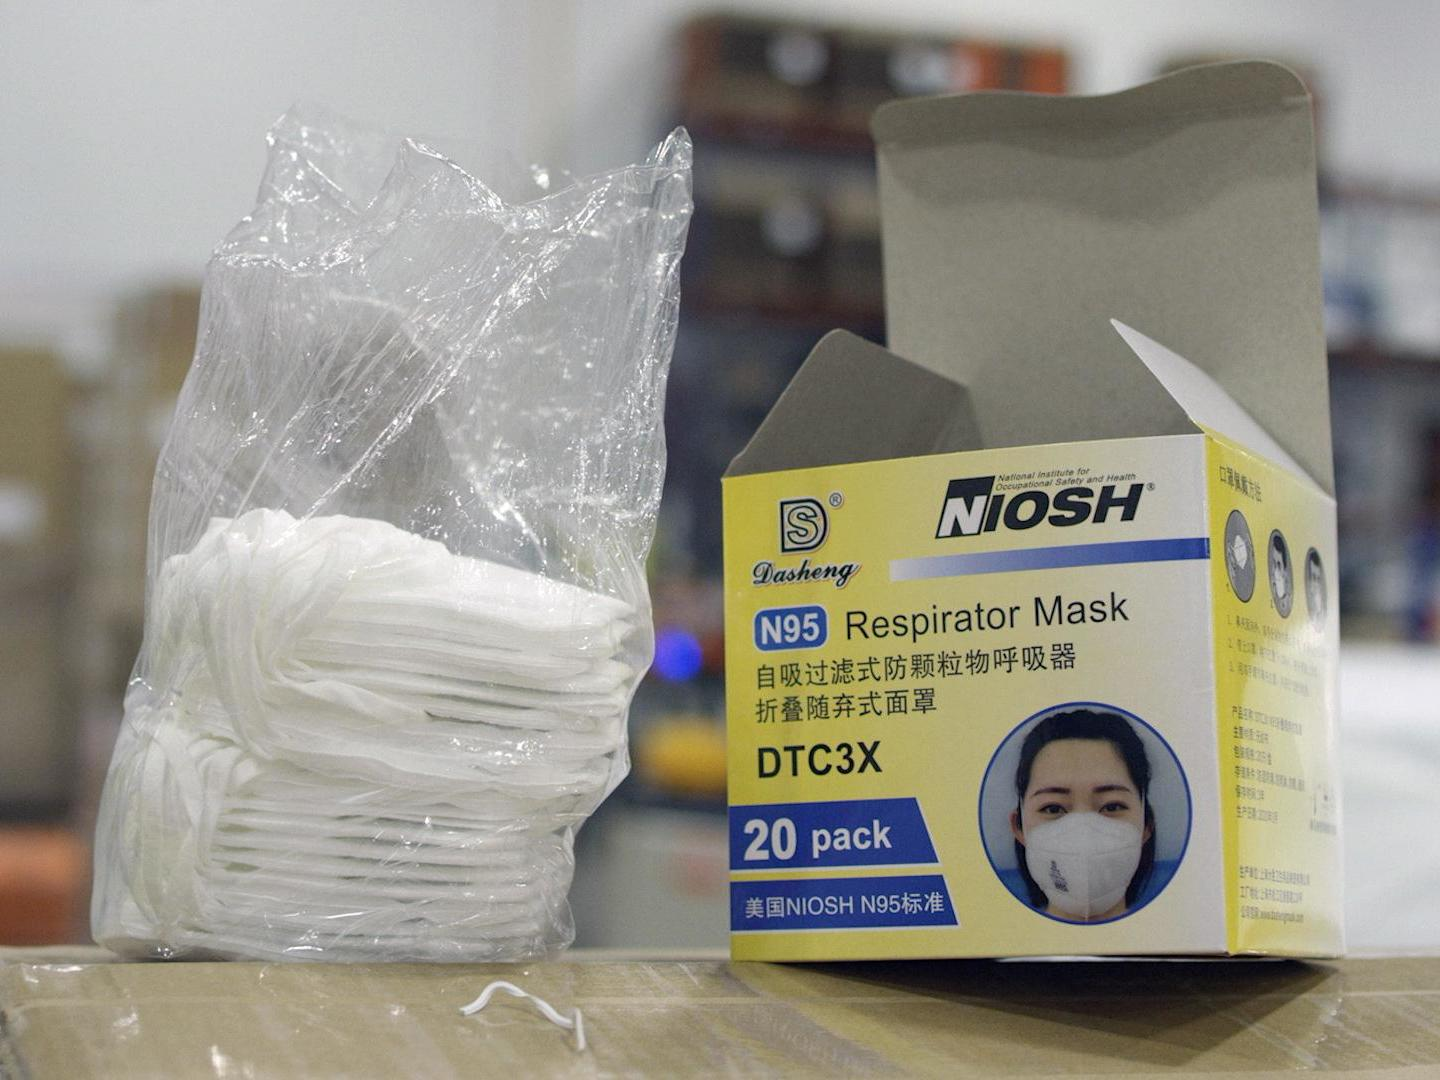 'Poorly constructed' counterfeit masks reaching US health workers thumbnail